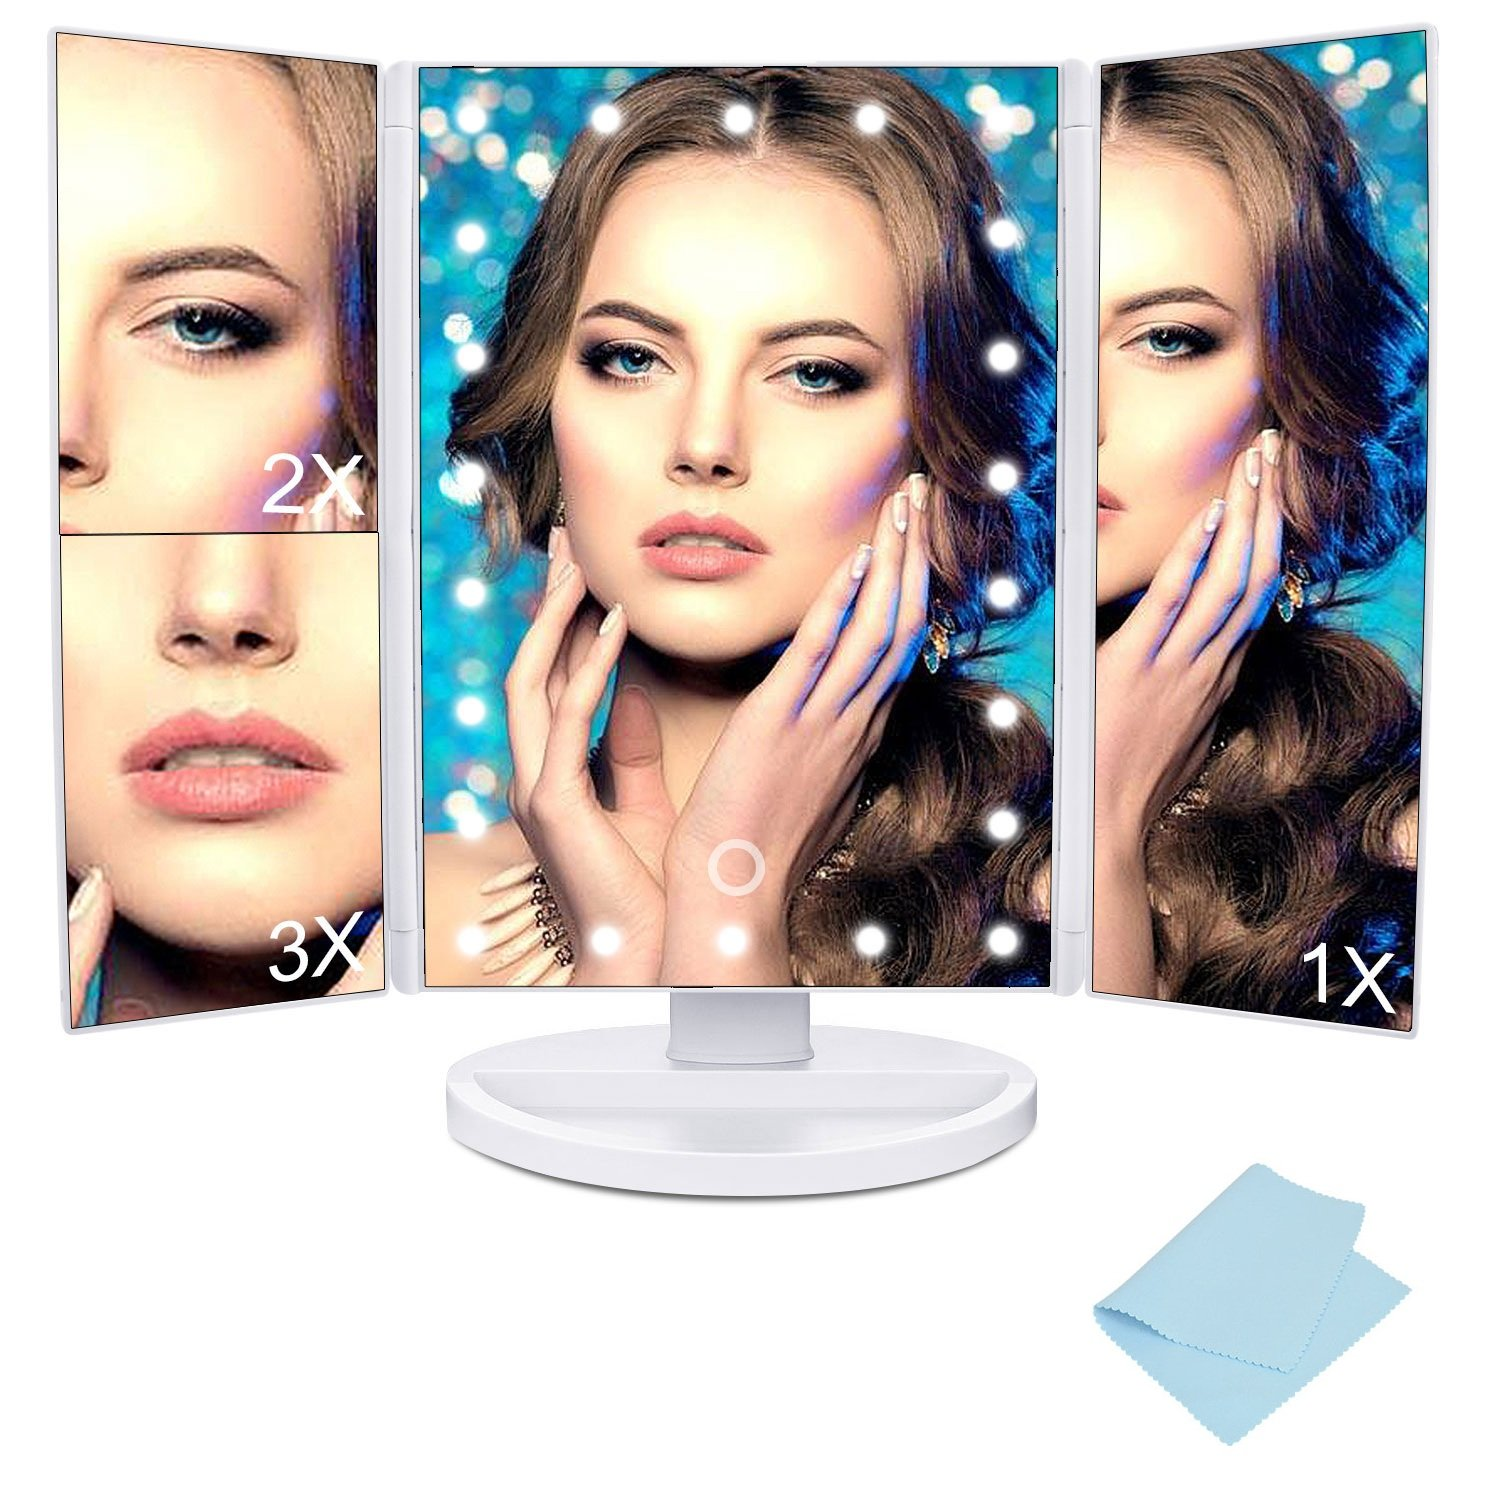 MaByTre Lighted Makeup Mirror Tri-folded Travel Vanity Mirror with 22 LED Lights and Magnifying Mirror with 2X 3X Magnification 180° Rotatable for Cosmetic Makeup - Small Mirror & Miror Cloth Included